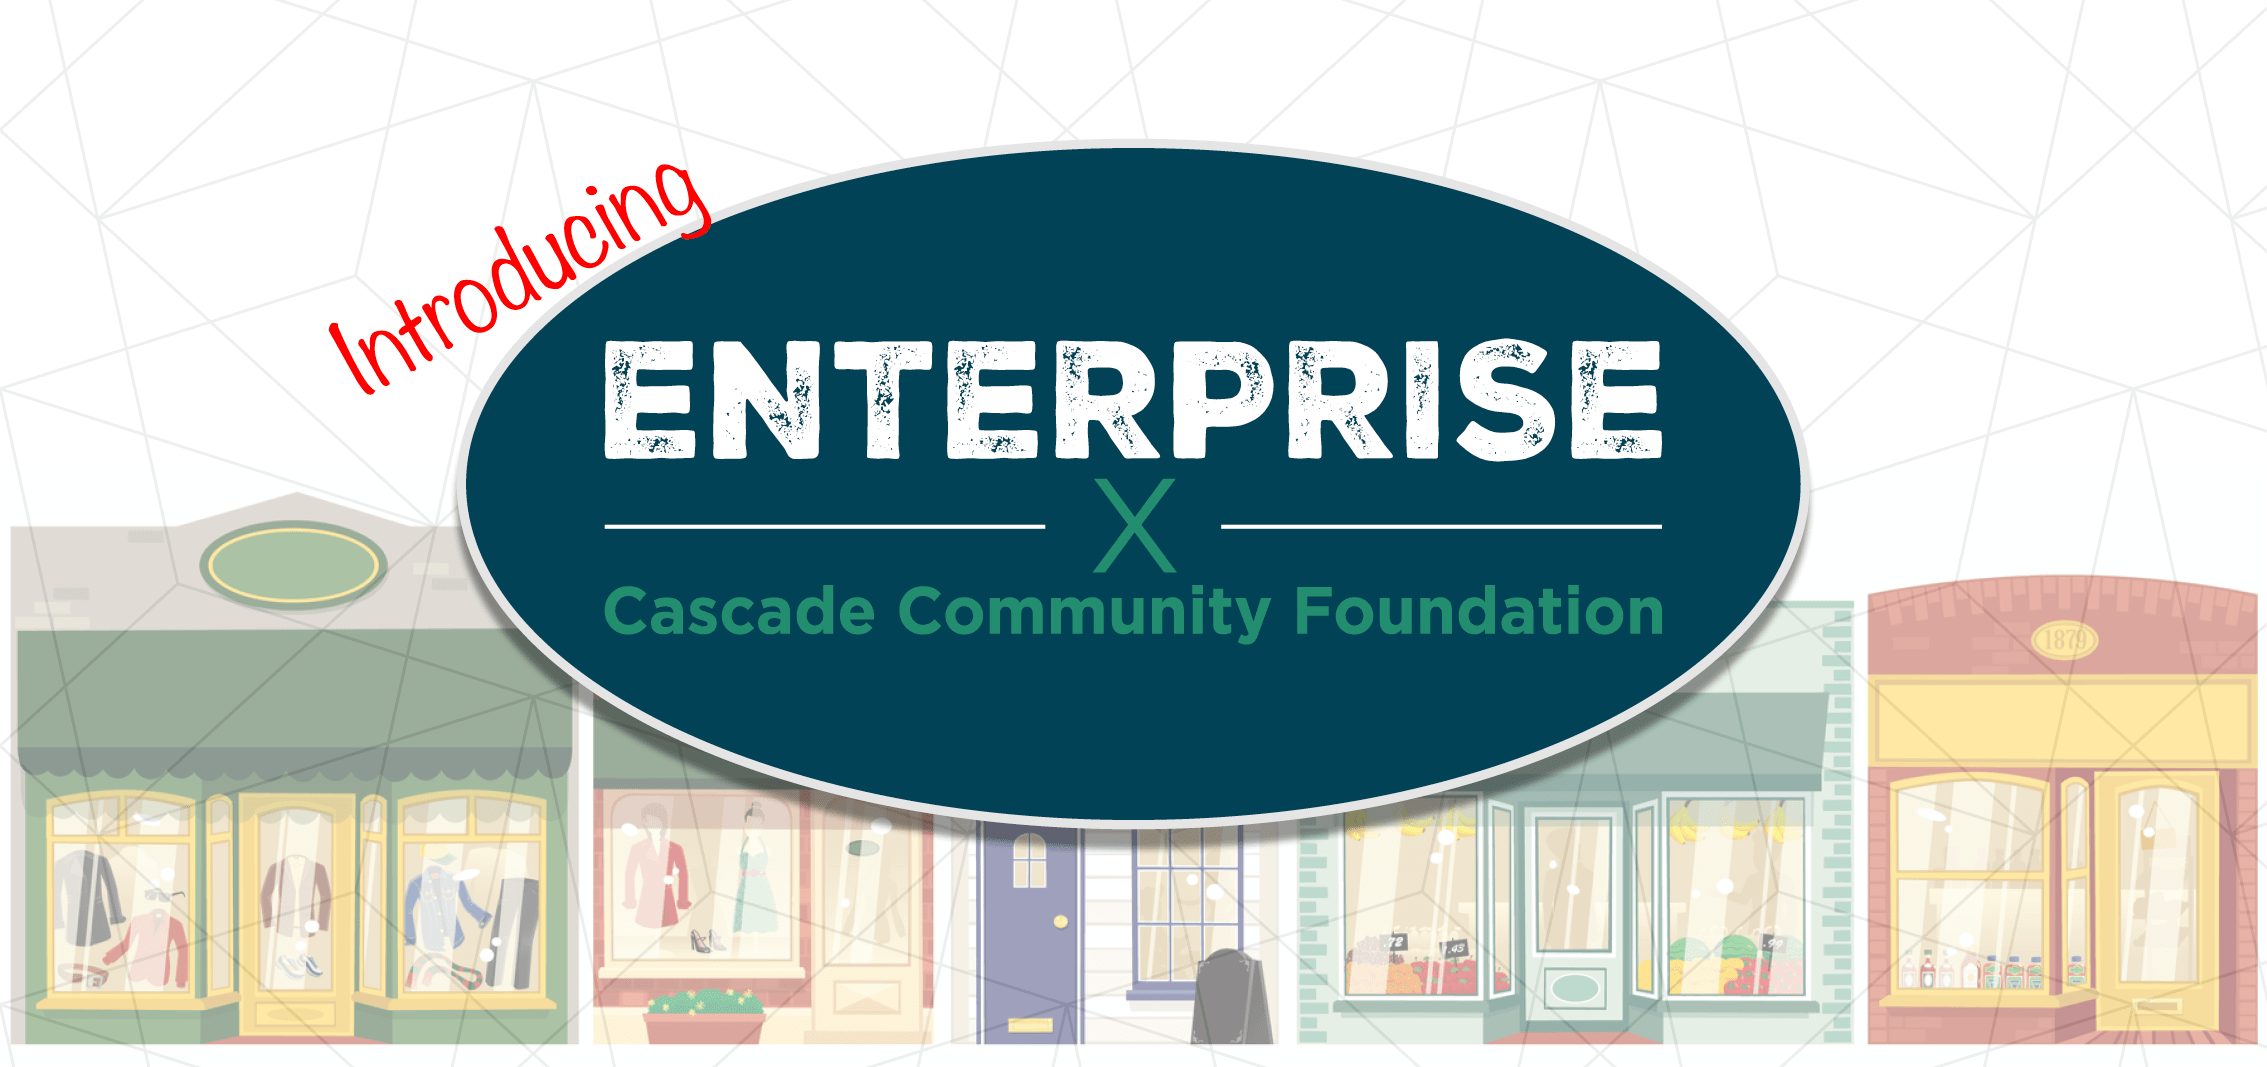 Introducing Enterprise Cascade Community Foundation